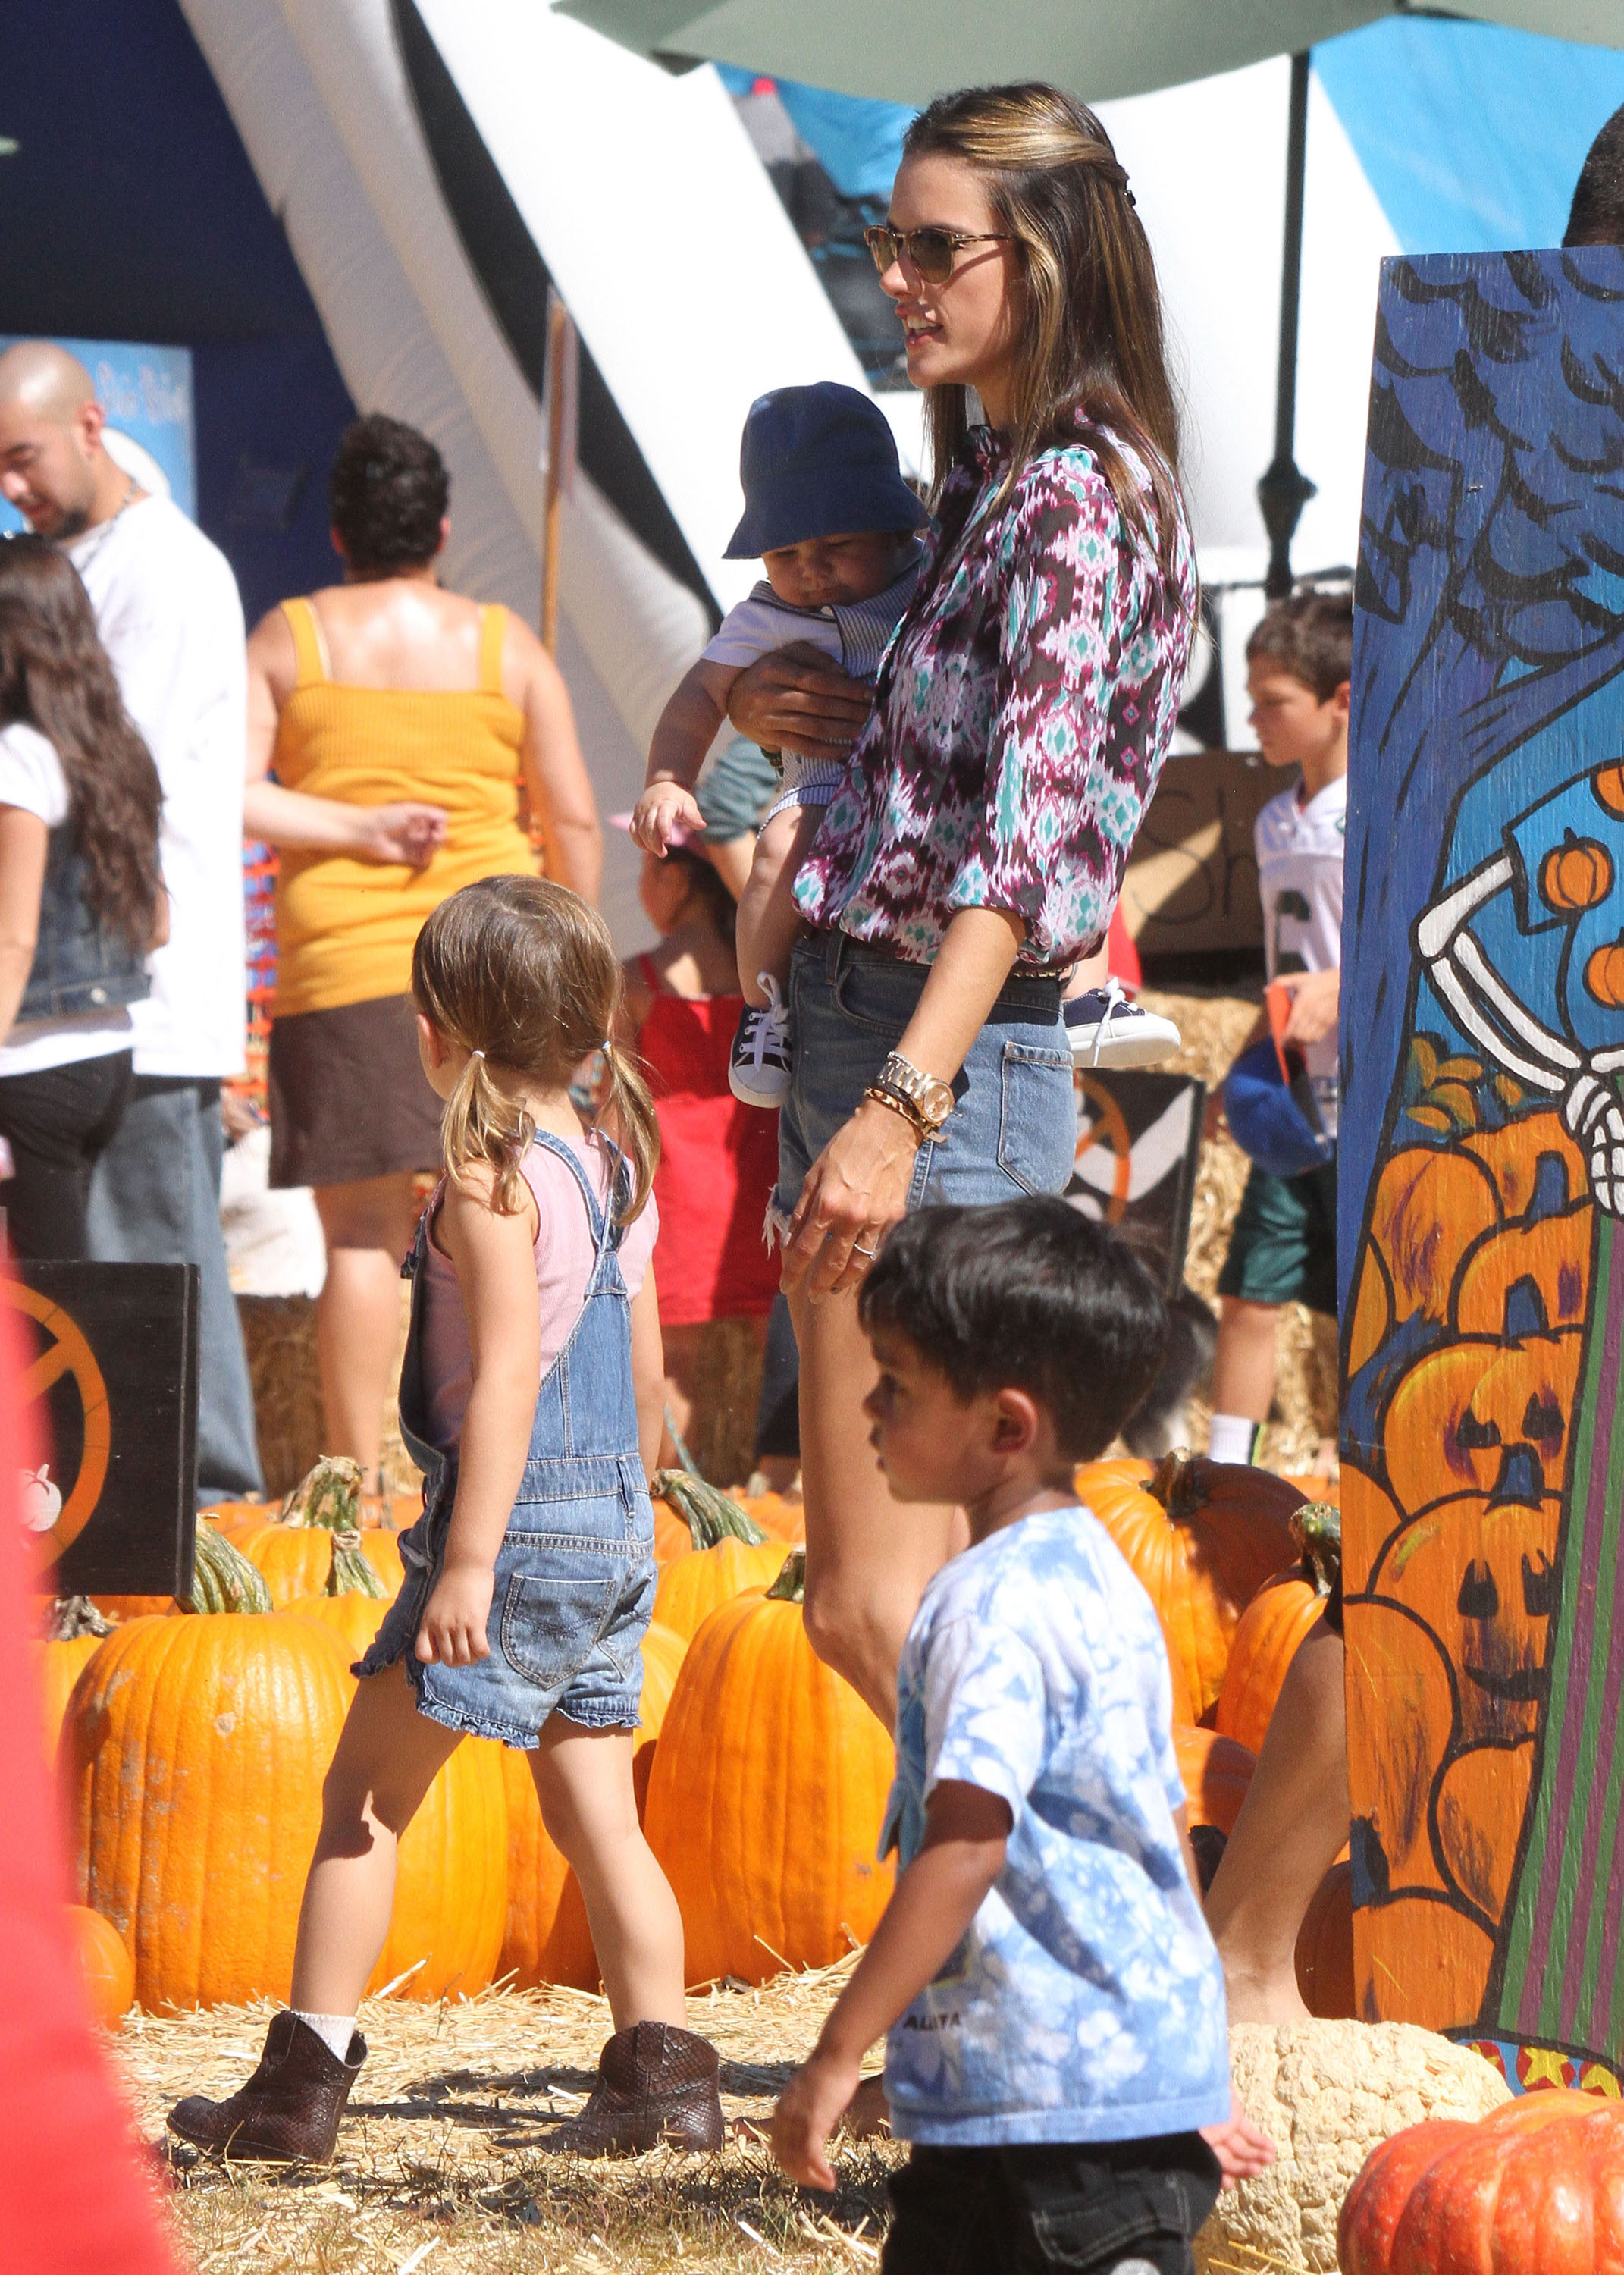 Alessandra Ambrosio showed off her legs in short cutoff shorts to accompany Anja and Noah through the pumpkin patch